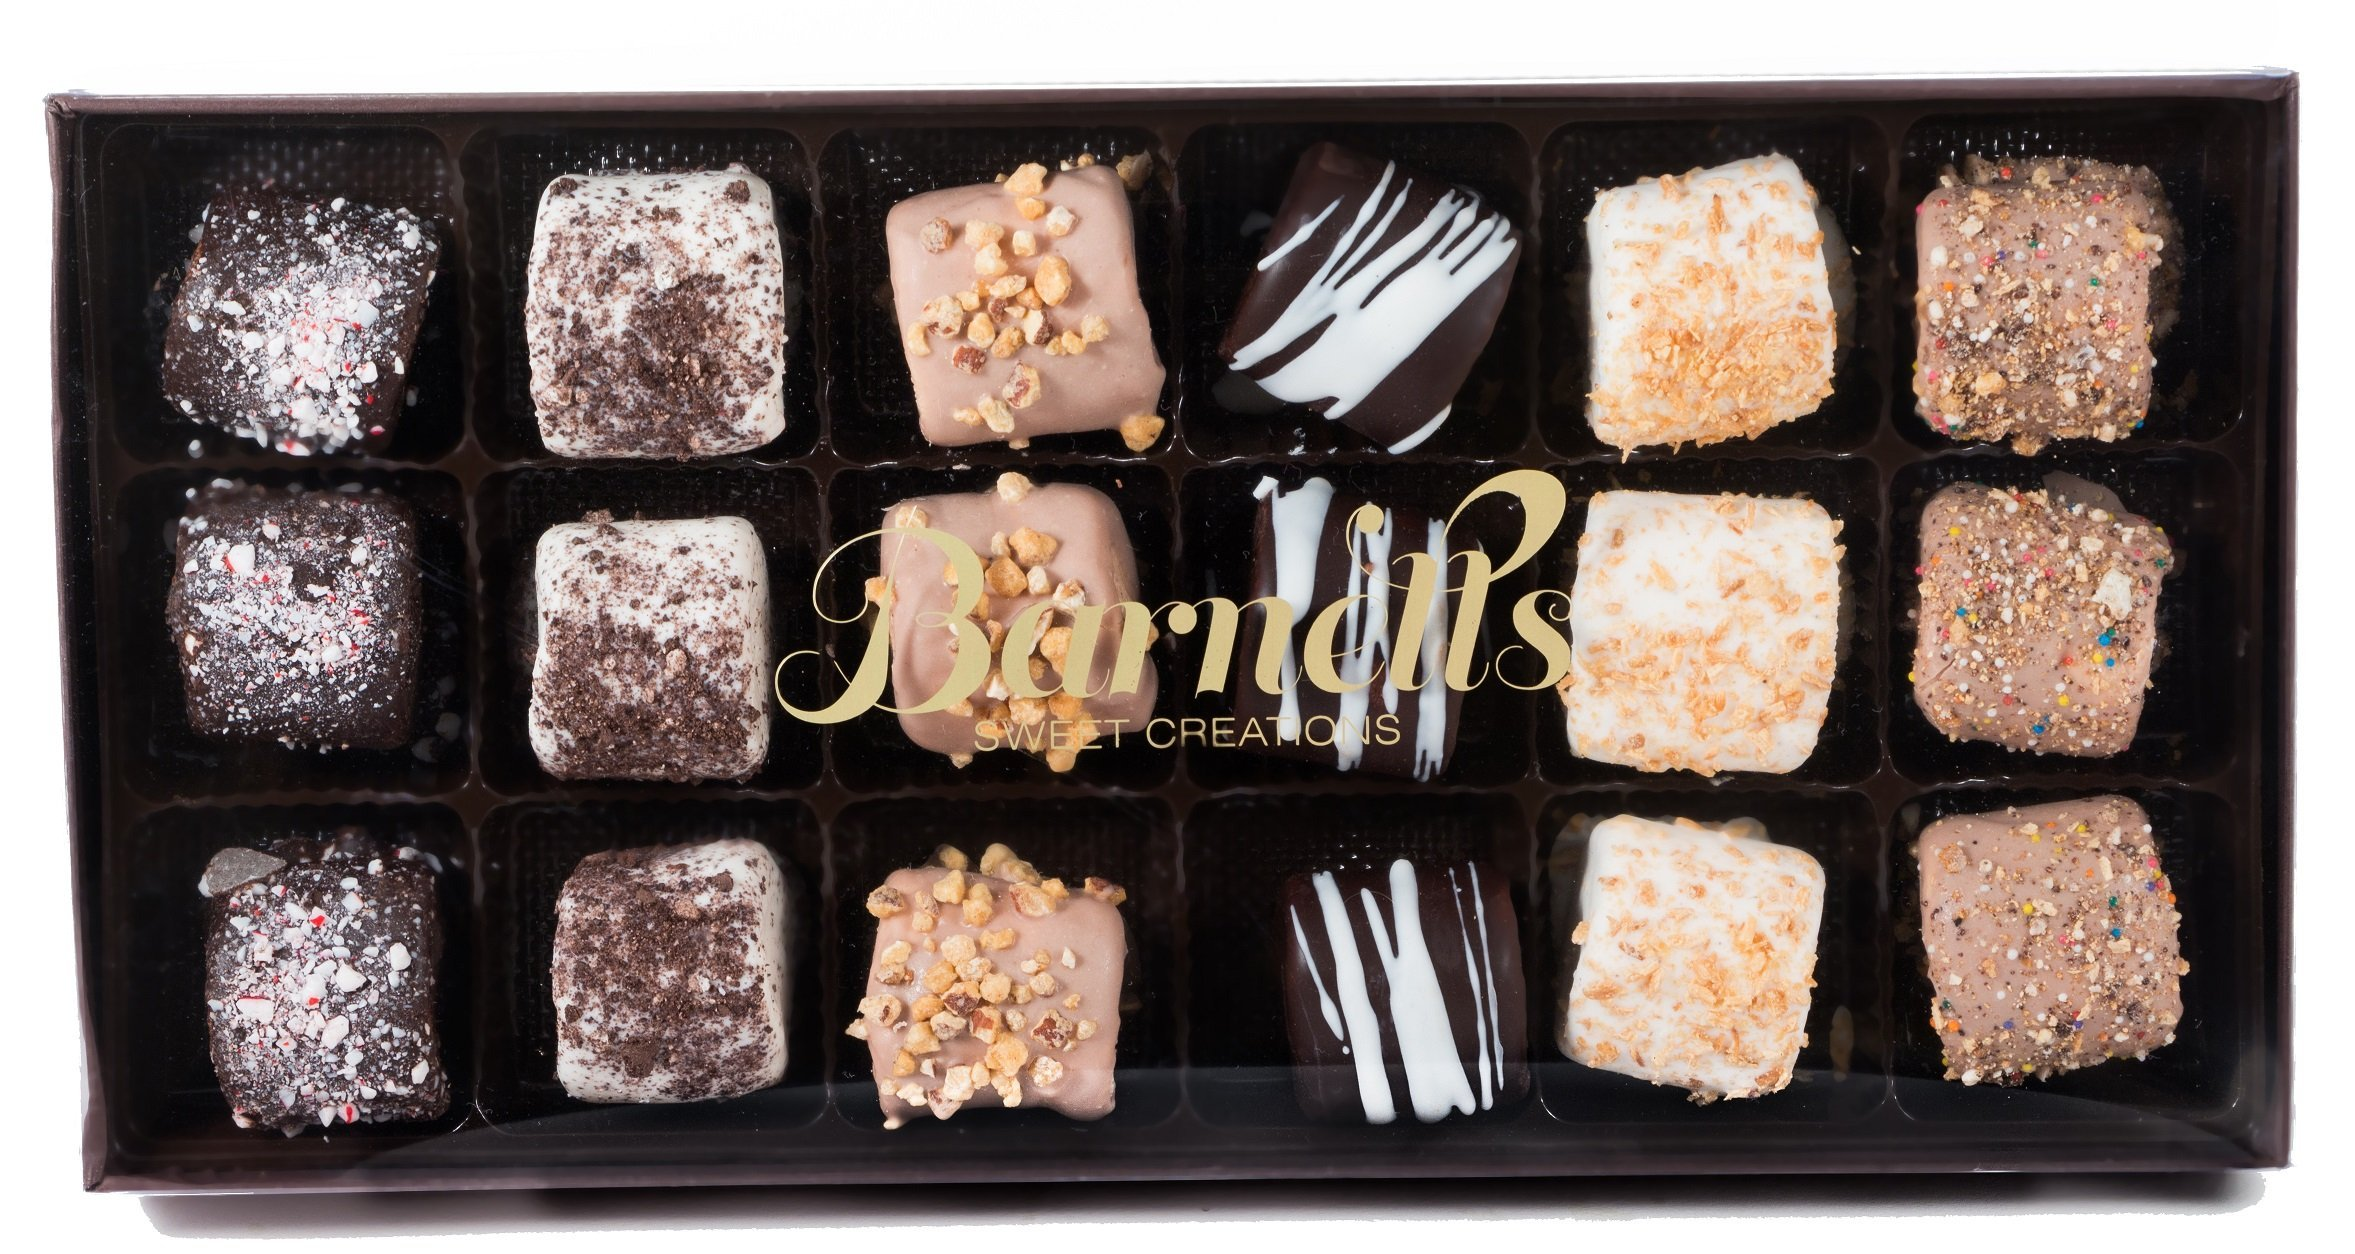 Barnetts Famous Chocolate Covered Marshmallow | Hand Dipped in Luxurious Dark, White, and Cappuccino Chocolate | Coated with 6 Decadent Premium Toppings | Packed 8 Pieces in Elegant Giftbox